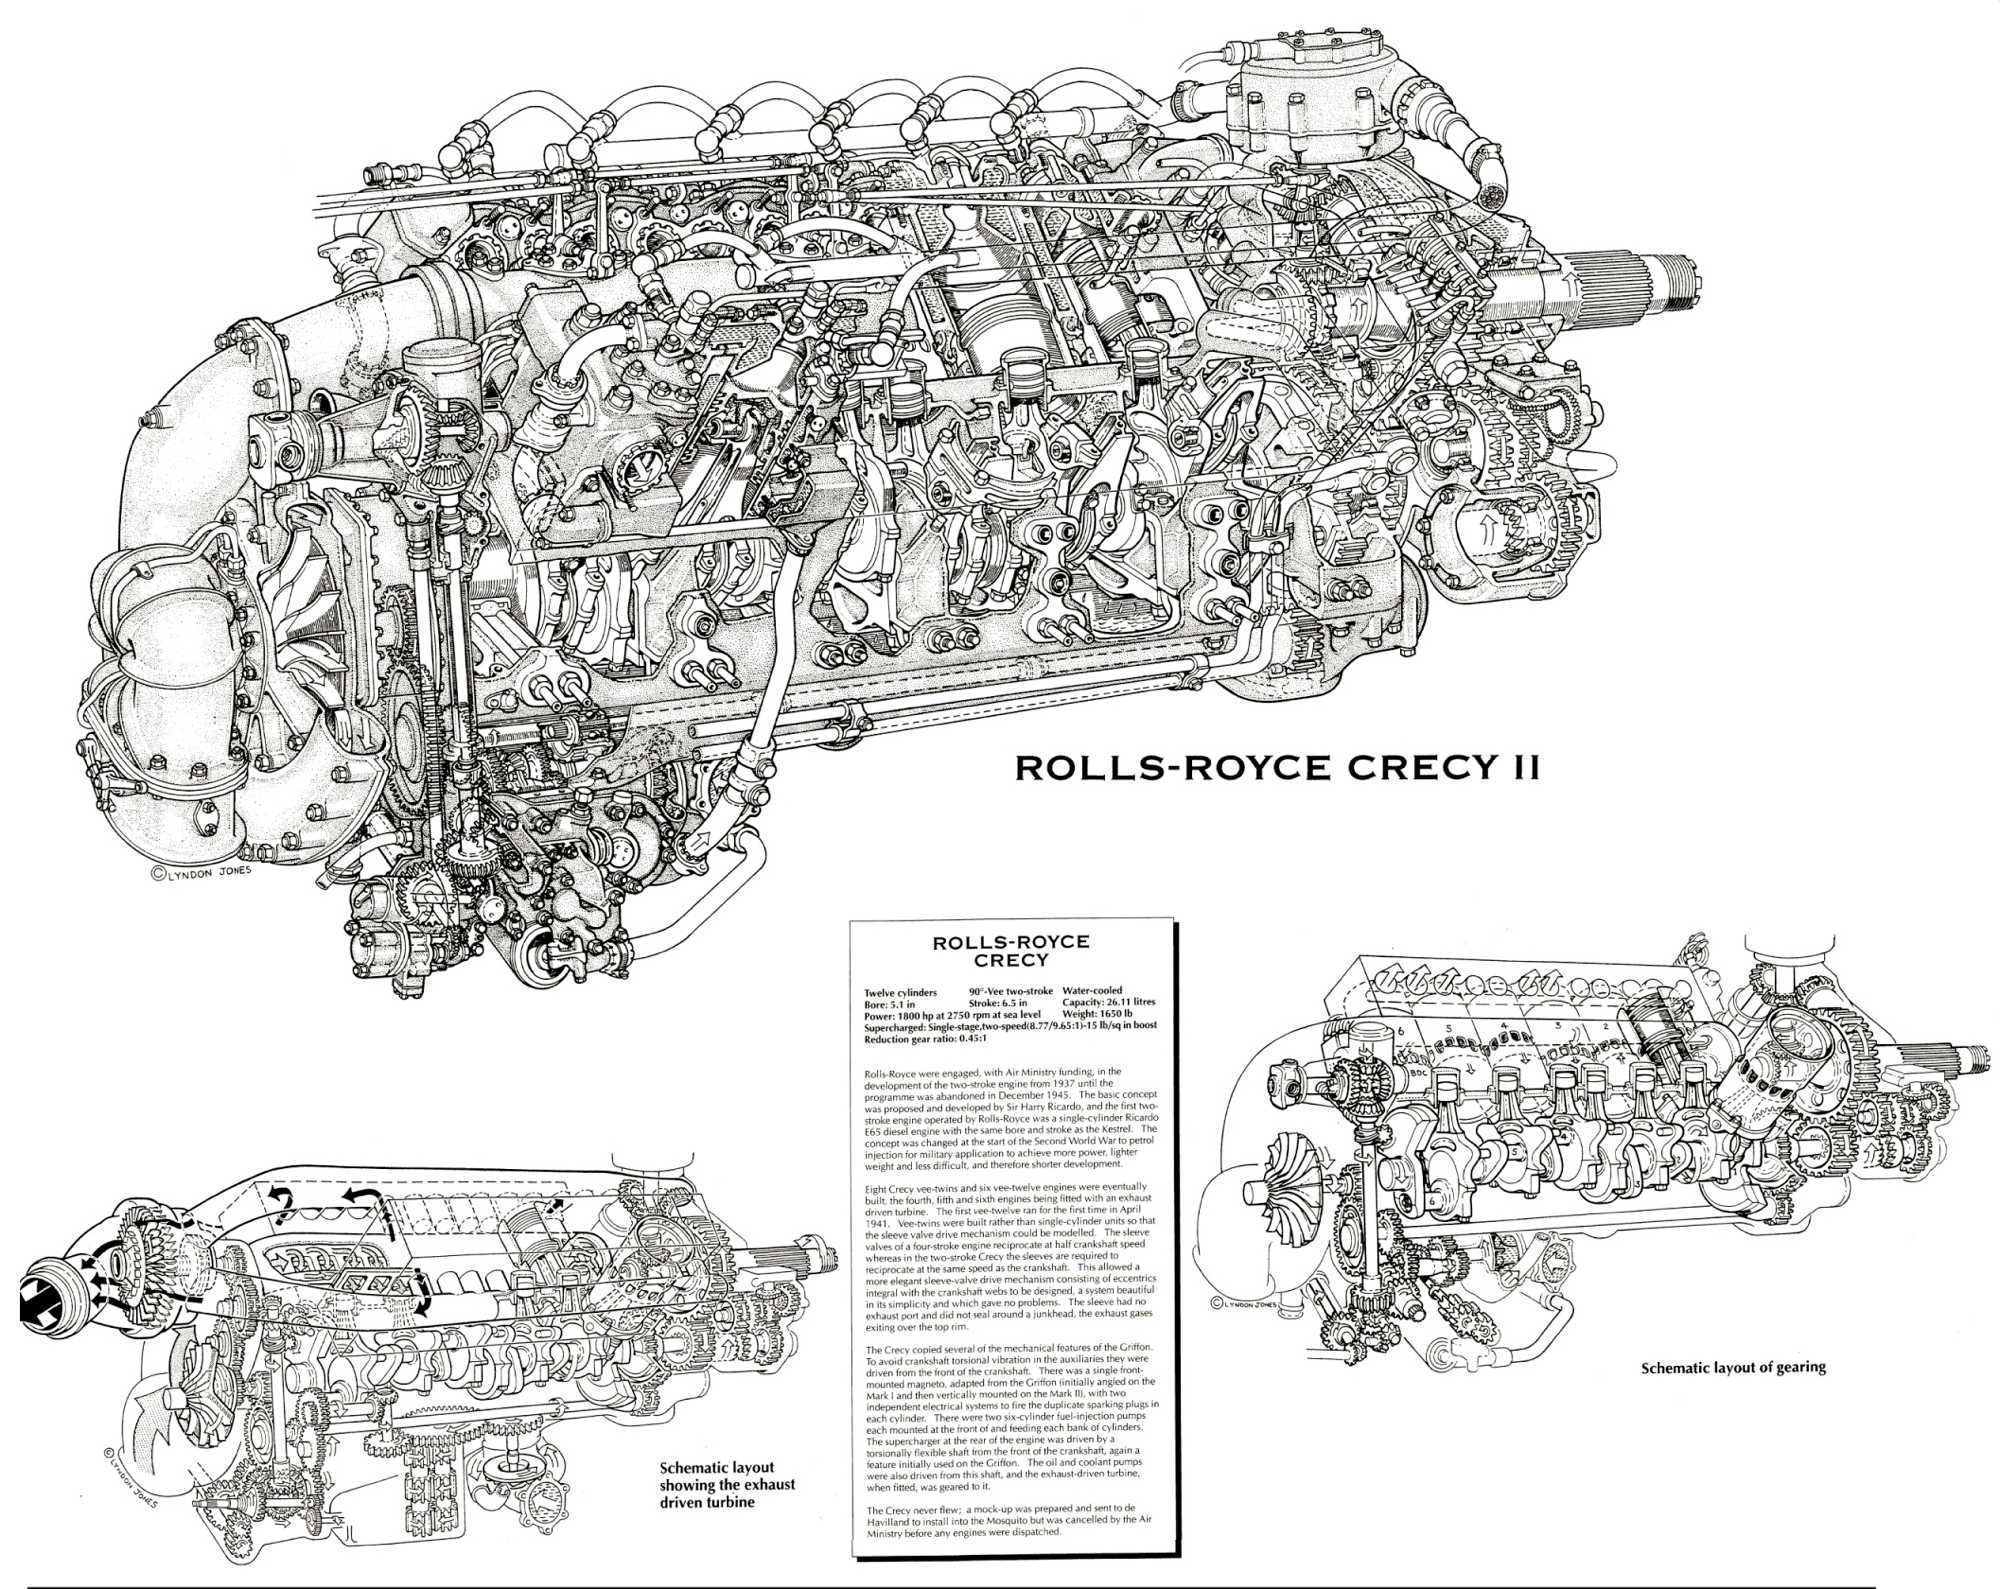 Rolls Royce Crecy Ii Engine Cutaway Aircraft Aircraft Design